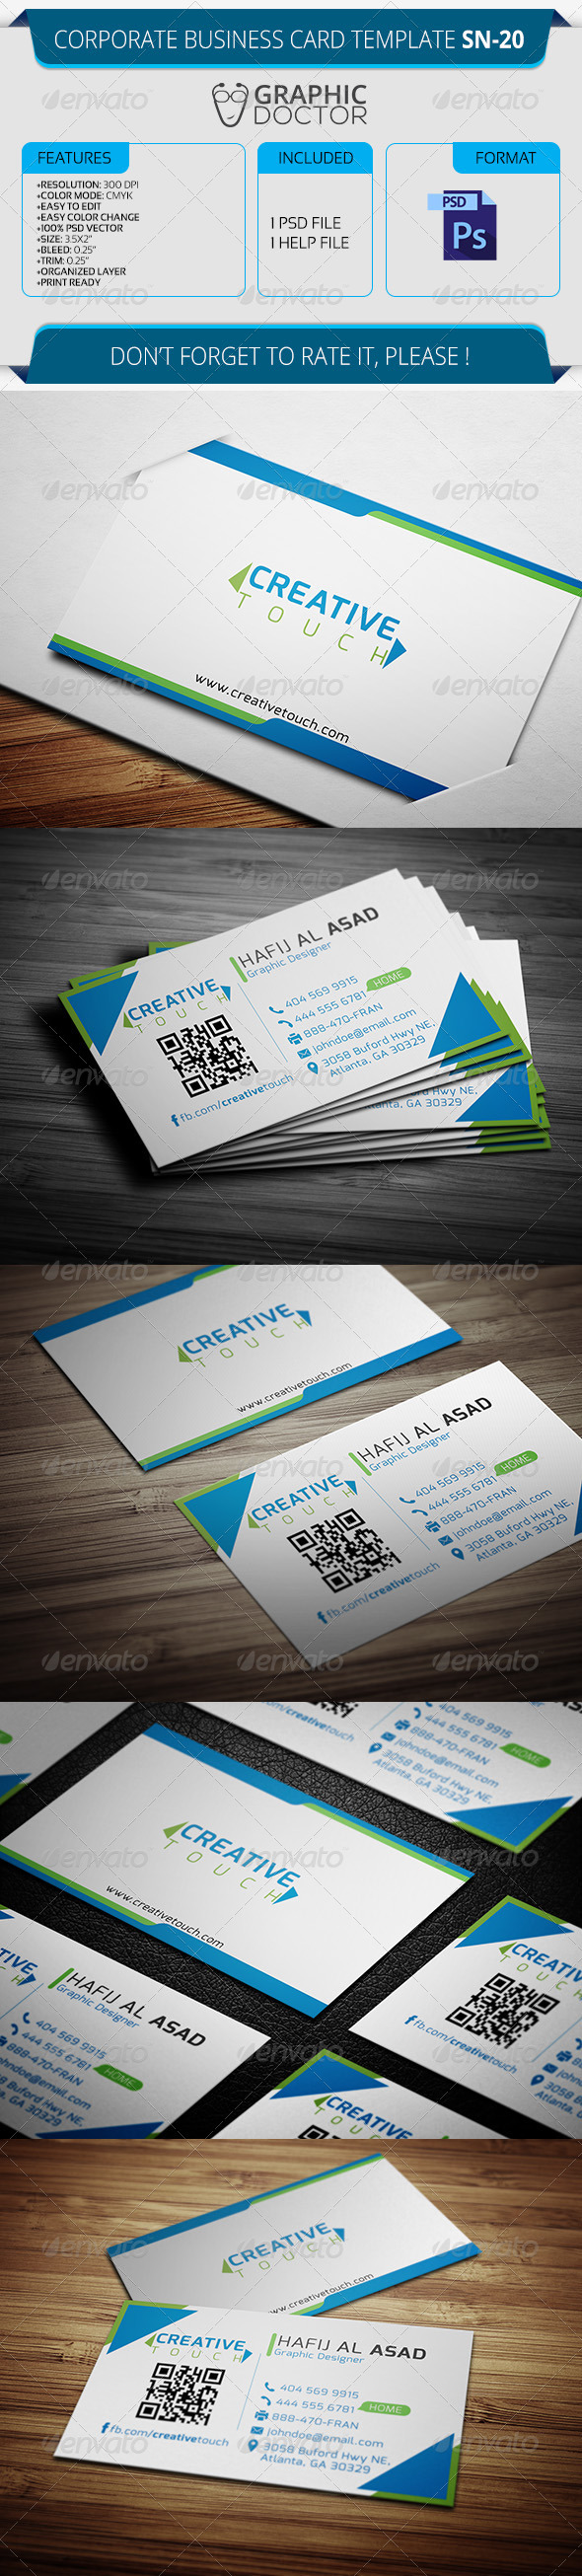 Corporate Business Card Template SN-20 - Corporate Business Cards